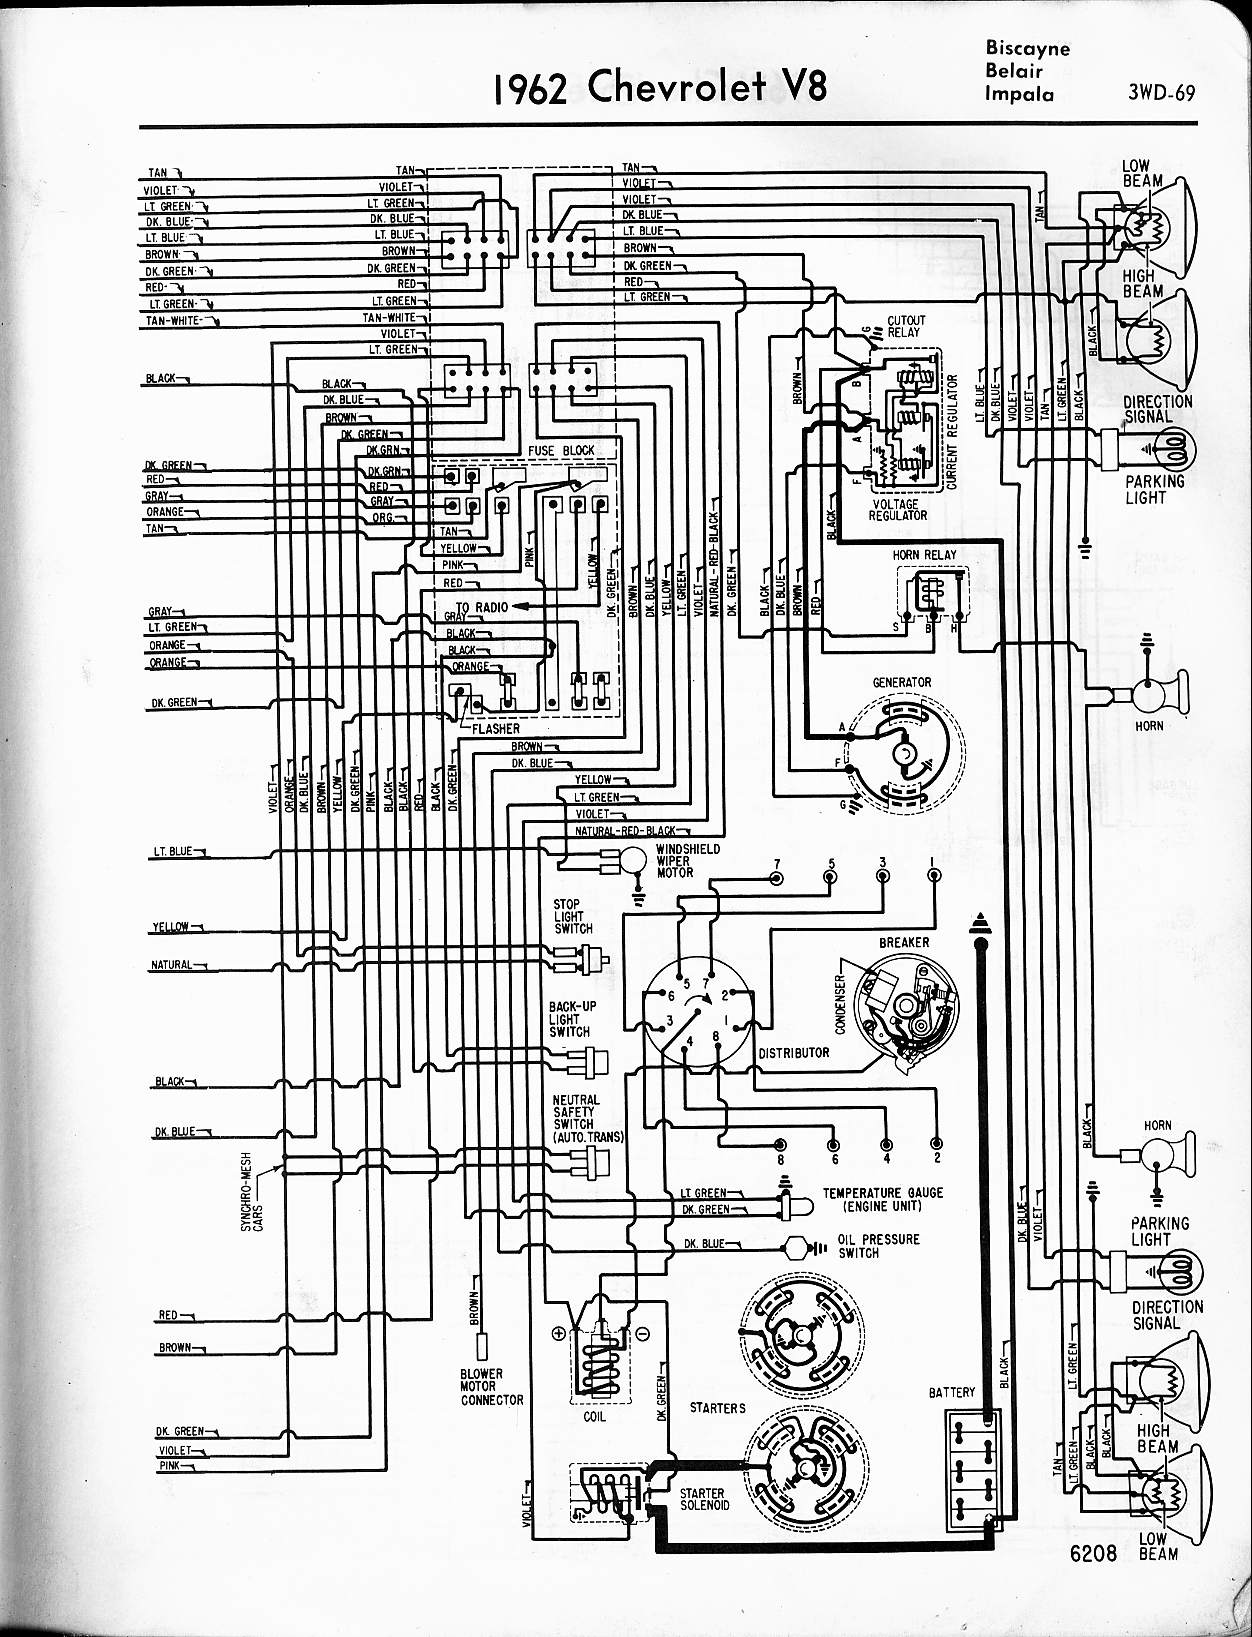 1968 bel air wiper wiring diagram free picture 1962 impala-no electrical power - chevy message forum ...